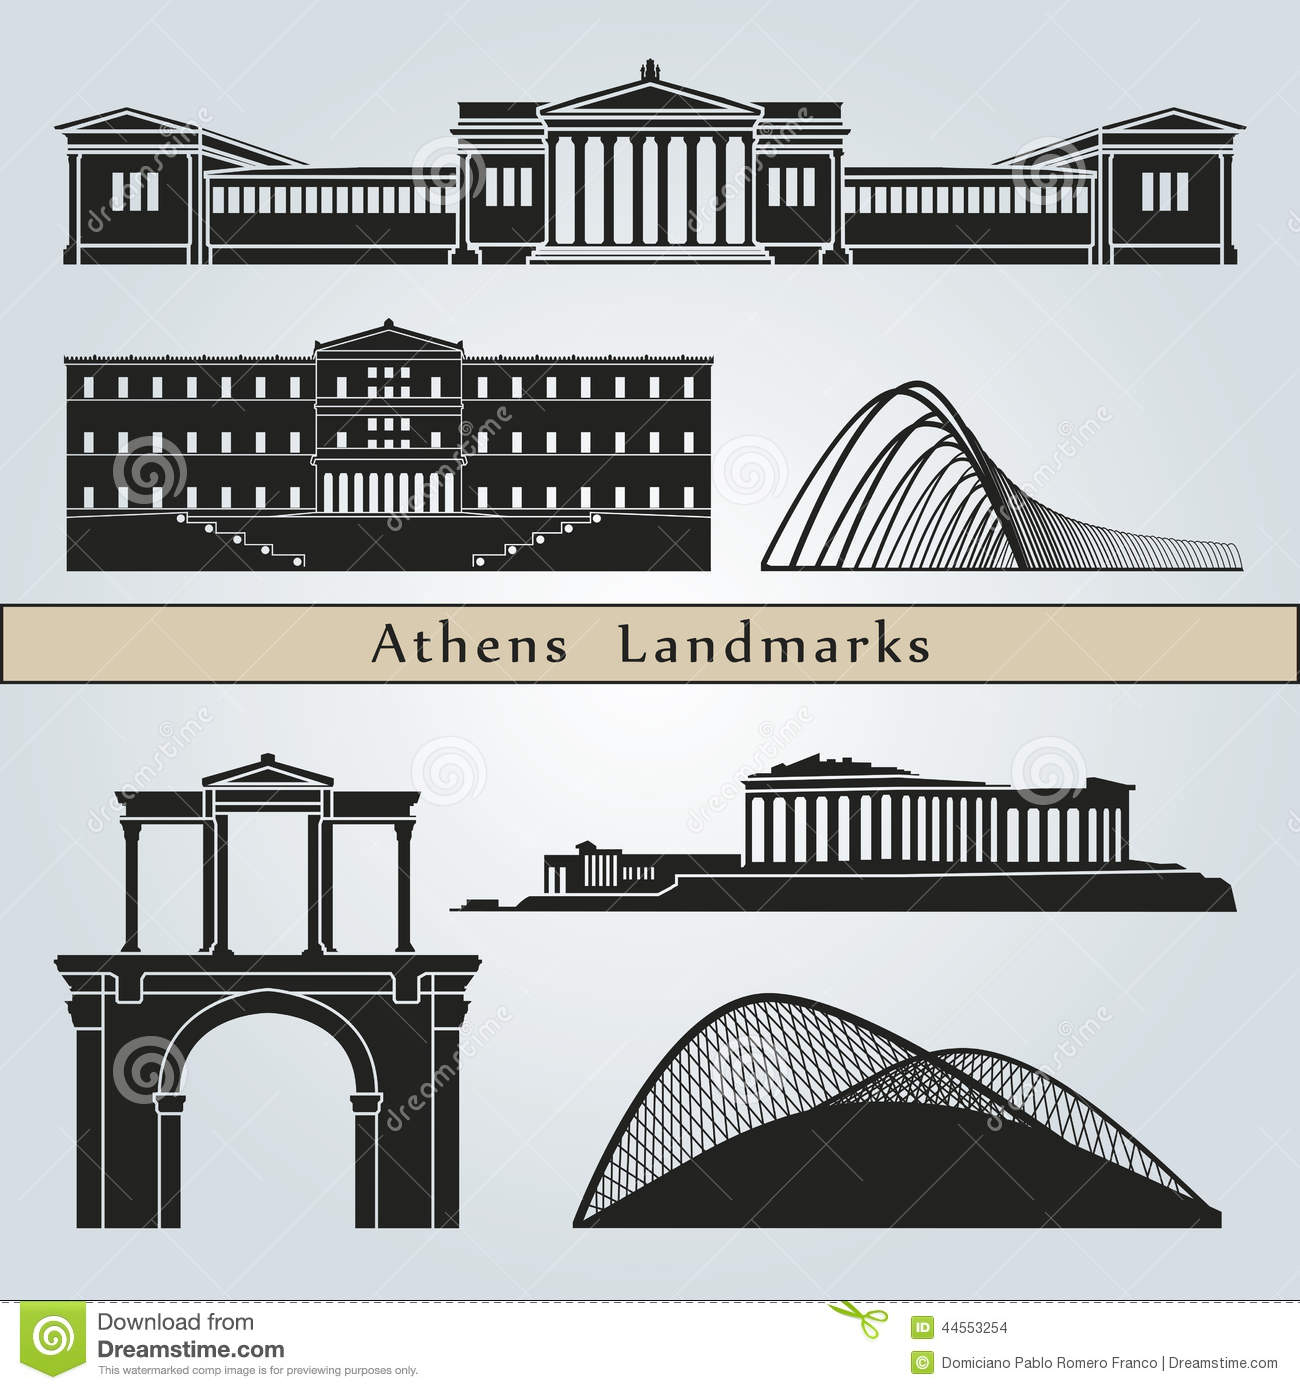 Outline athens skyline with blue buildings and copy space stock vector - Athens Landmarks And Monuments Stock Images